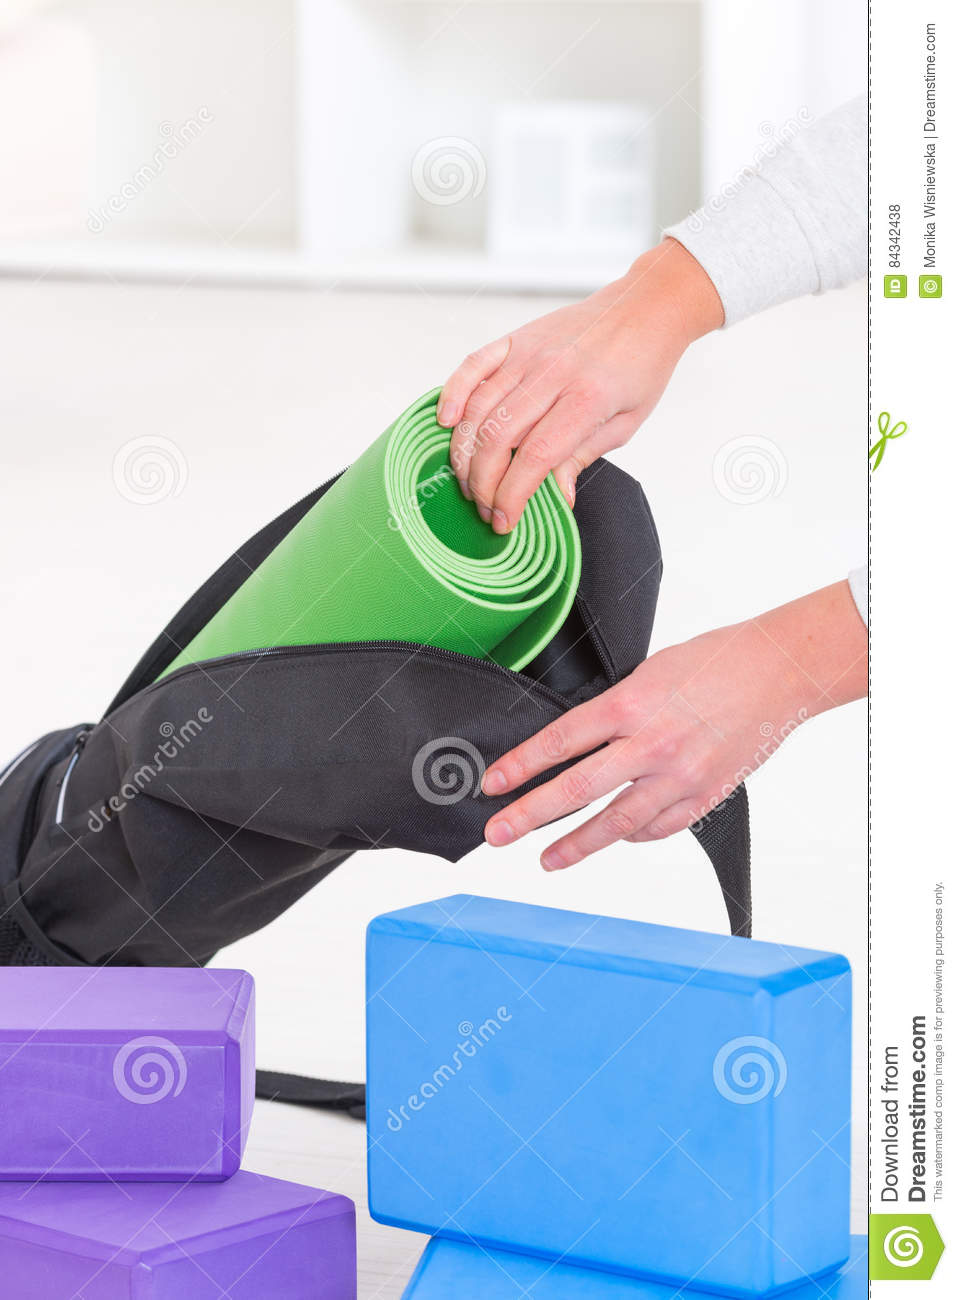 Yoga Mat Inside A Special Yoga Bag Stock Photo - Image of leisure ... 832fd187deb1d